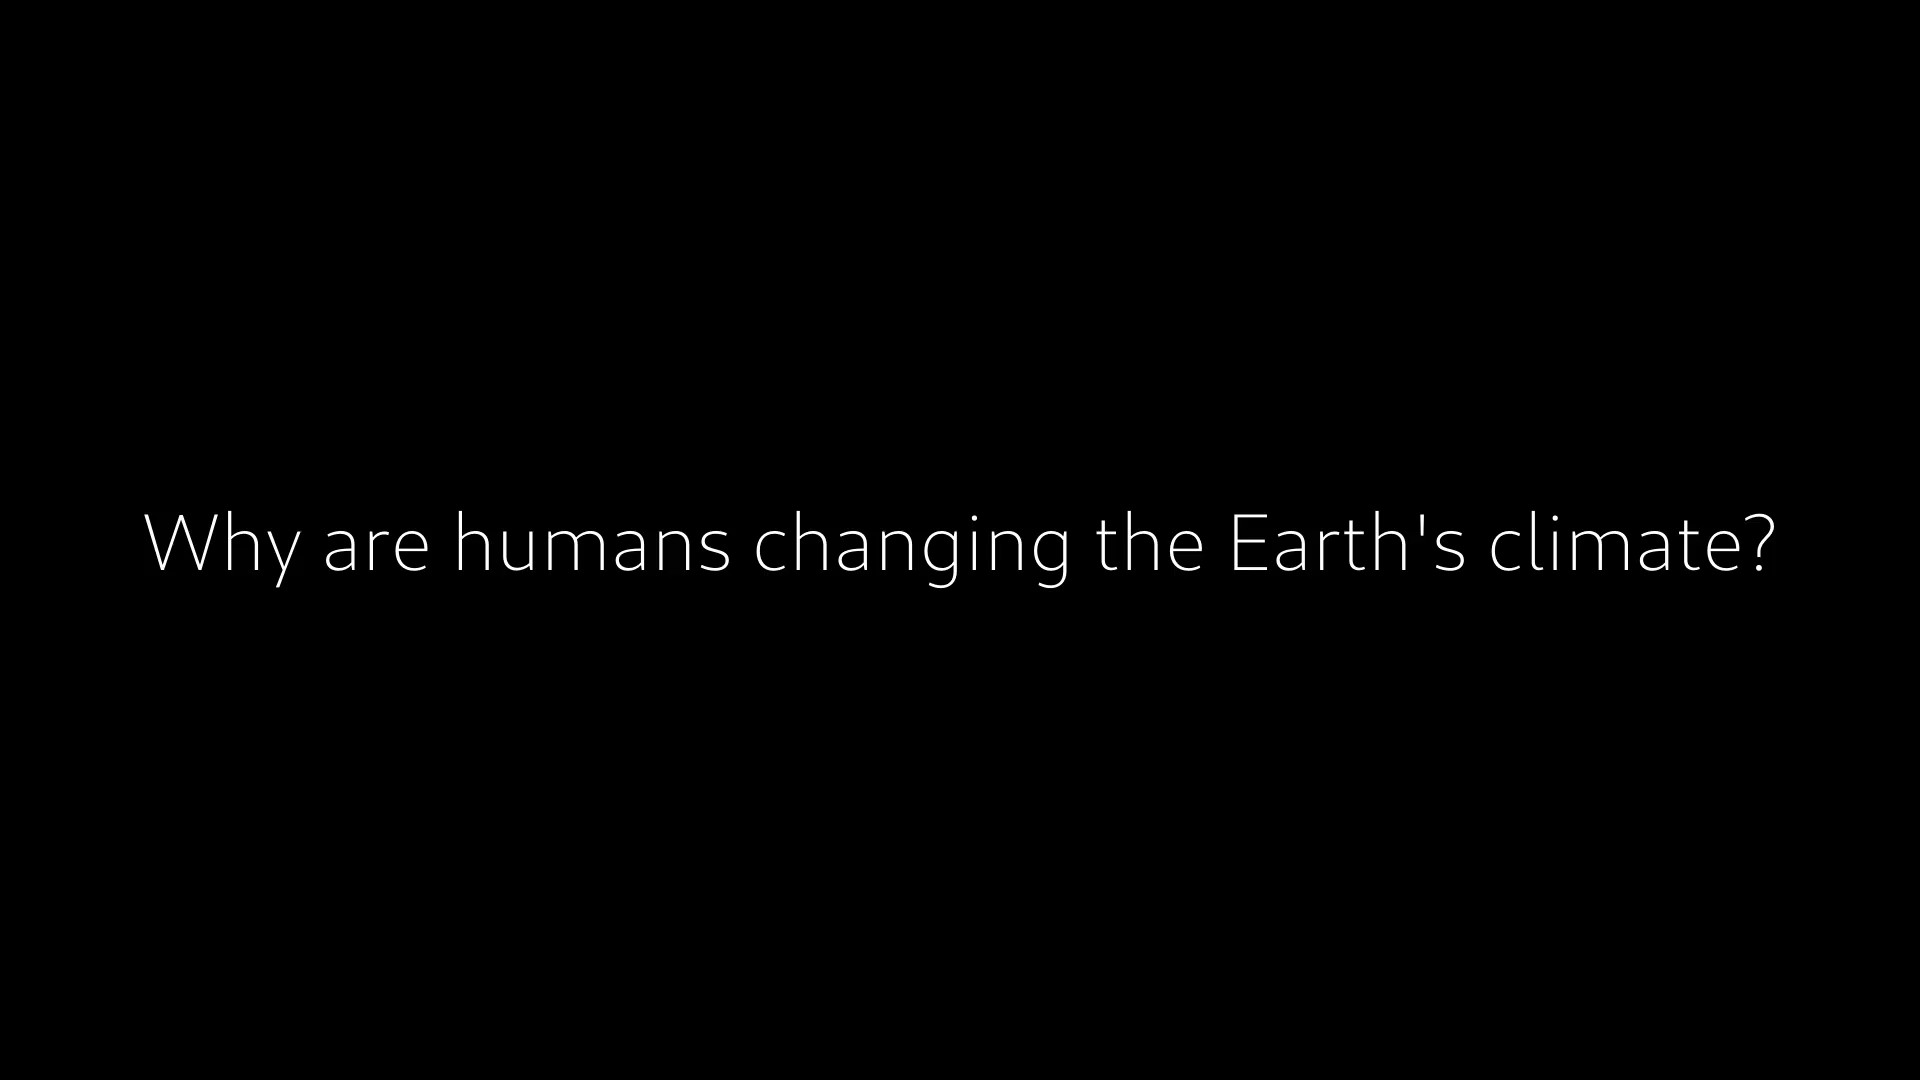 Why are humans changing the Earth's climate?